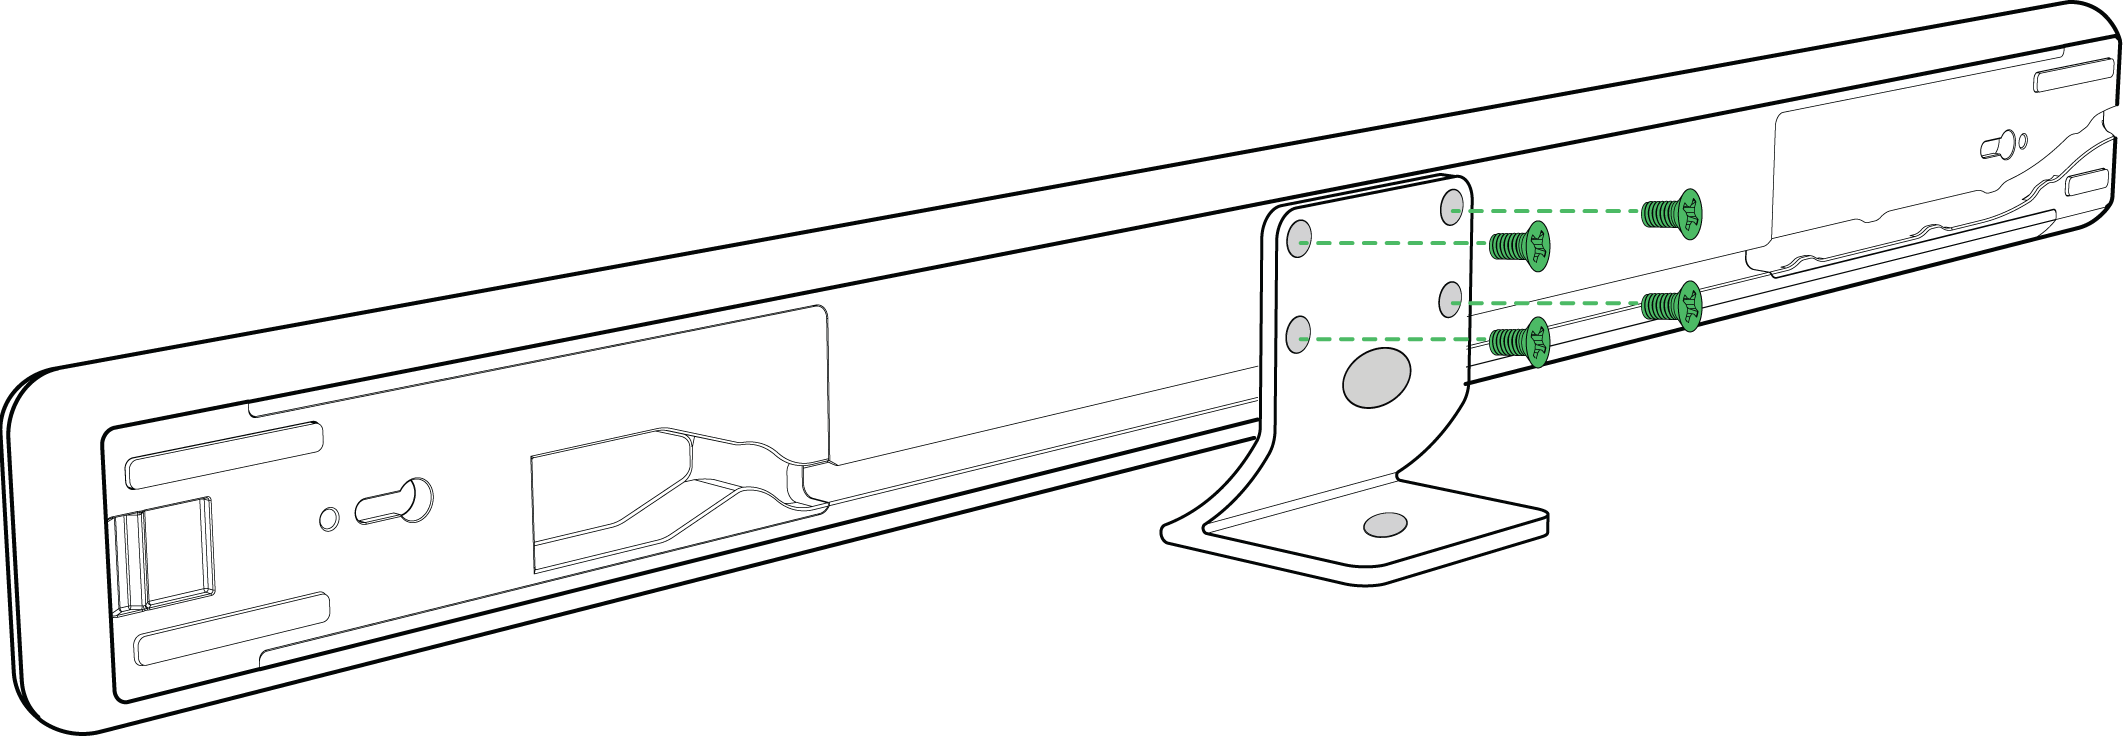 Diagram showing how to attach an MXA710 microphone to a desk stand using 4 screws. The 5th screw attaches the stand to a surface.